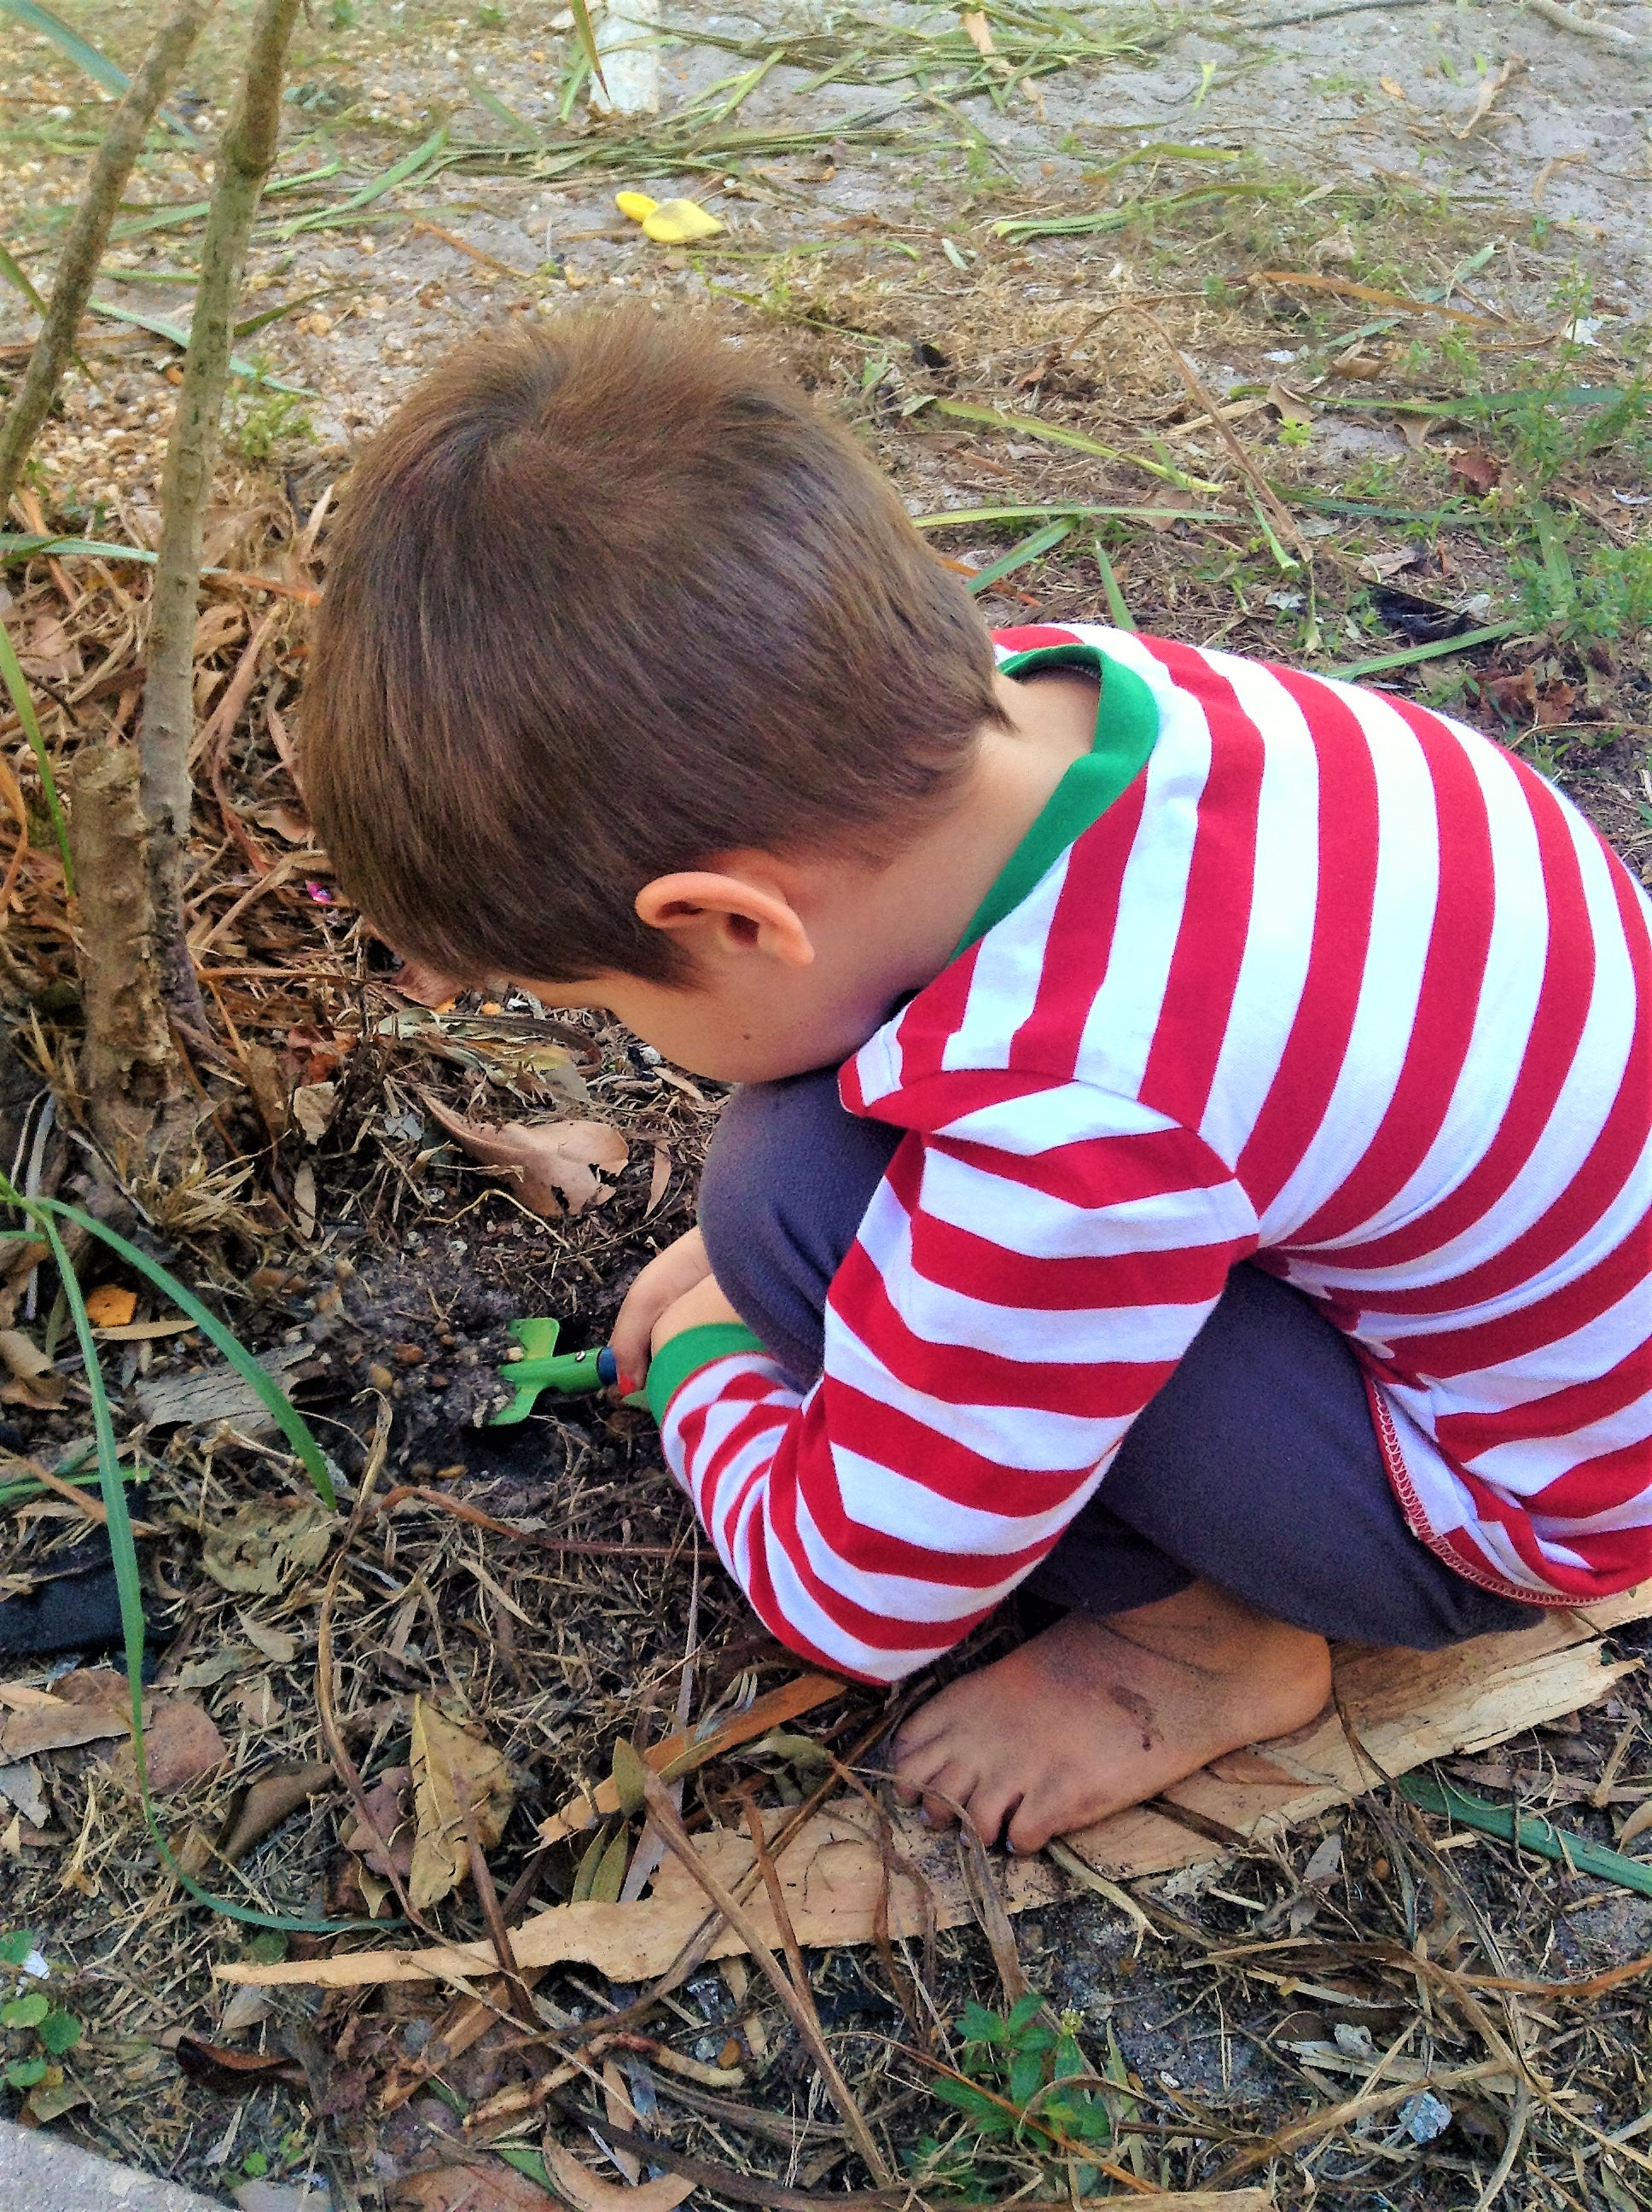 Child led learning with hands-on activities and eclectic homeschool curriculum